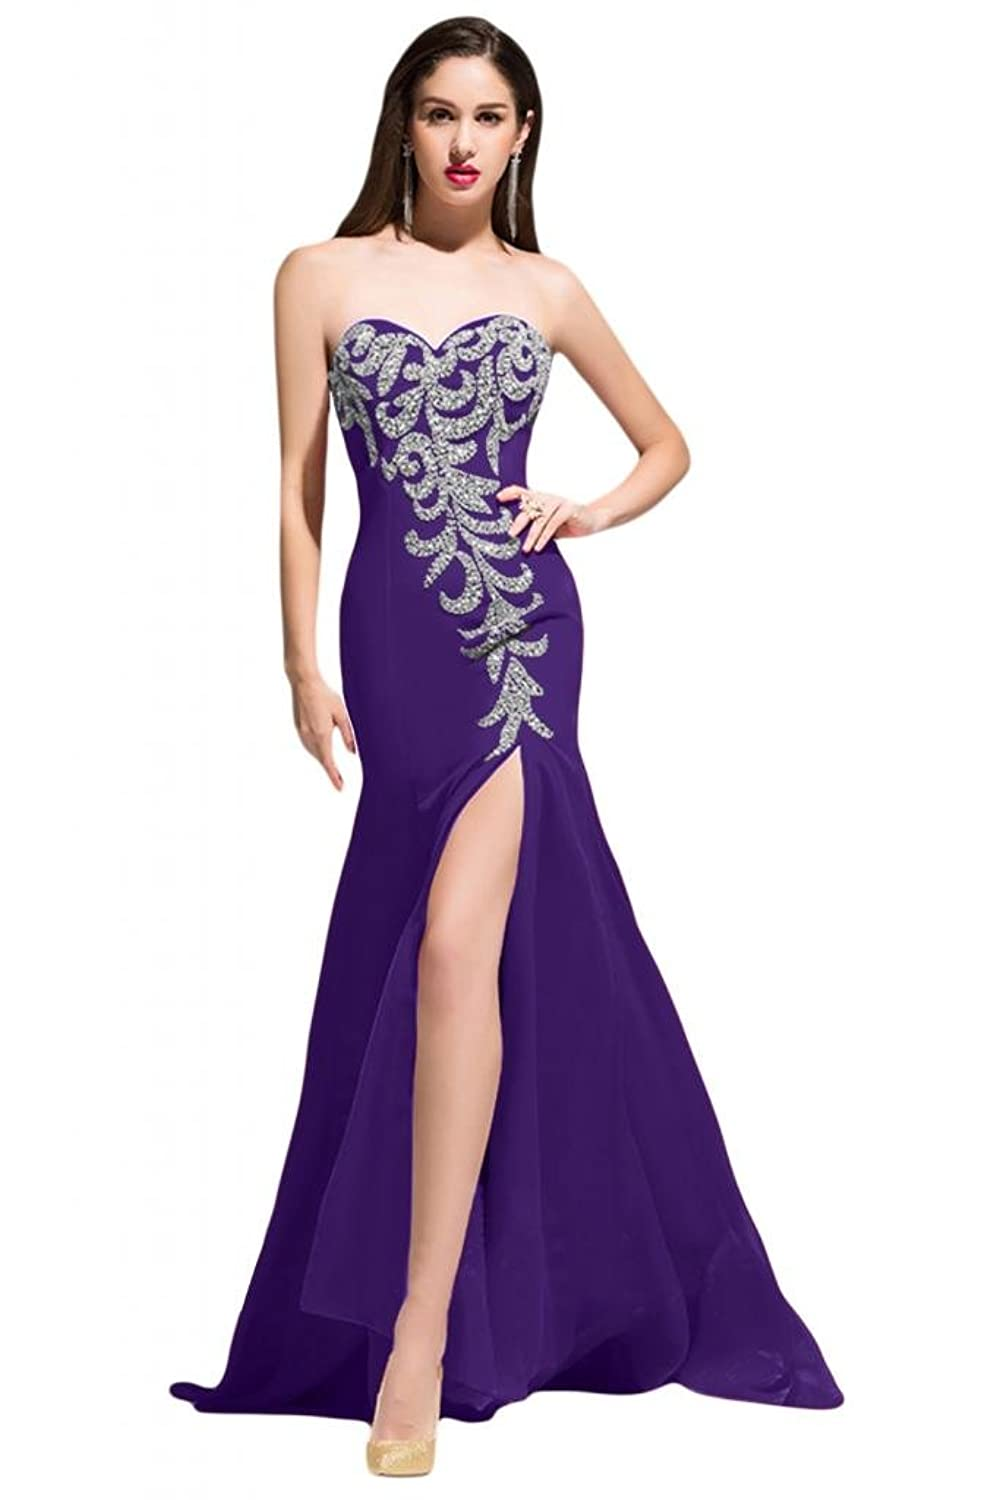 Sunvary Spaghetti Strap Satin V Neck Ball Gowns for Party Cocktail